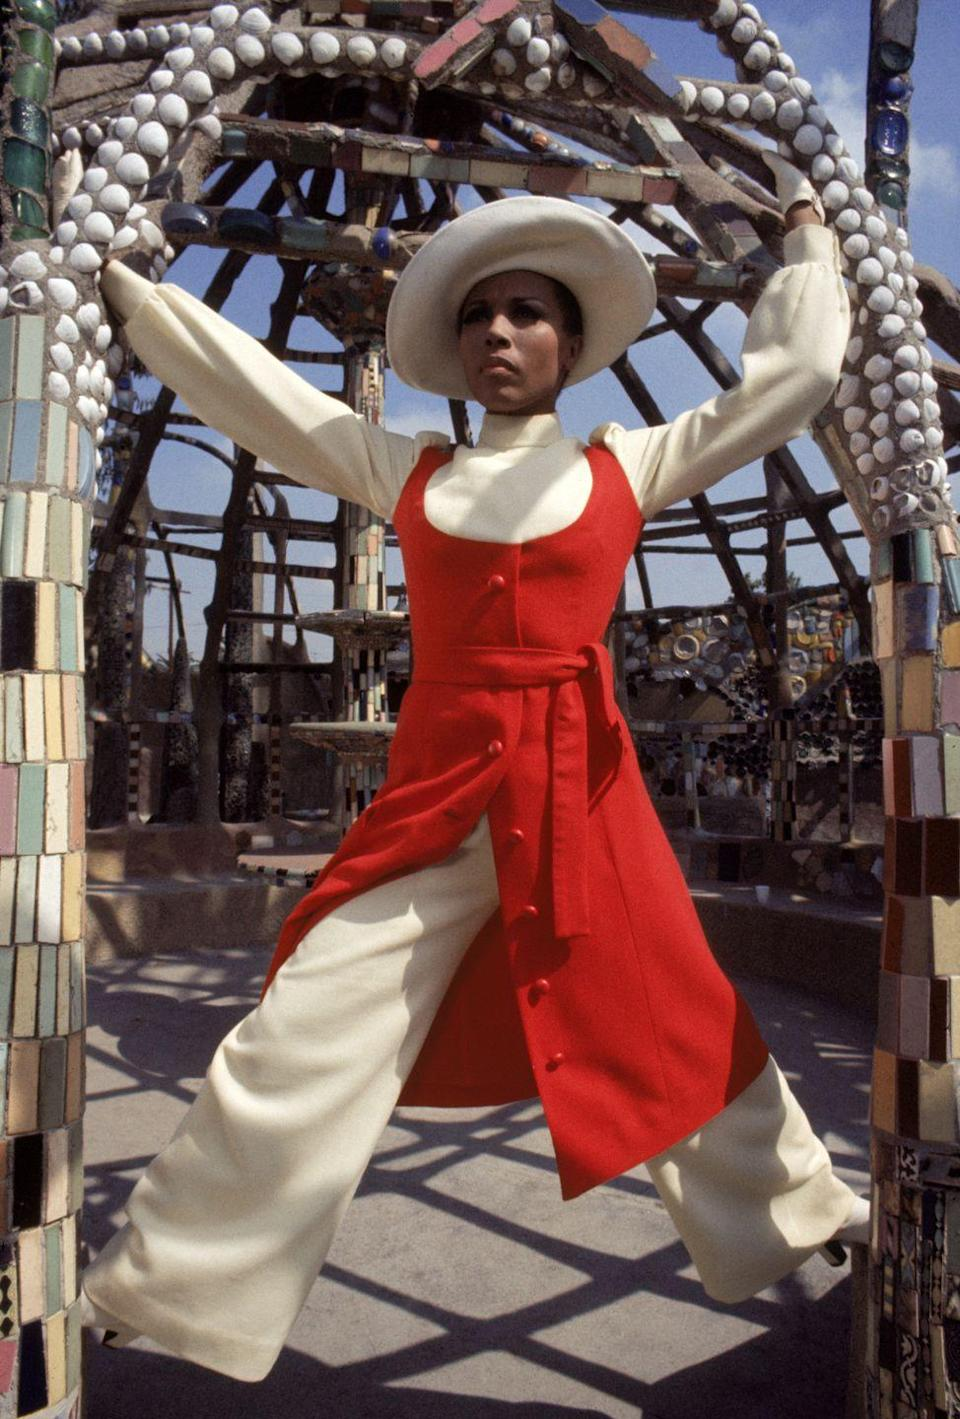 <p>Diahann Carroll struts a pose in a dress worn over pants. <br></p>